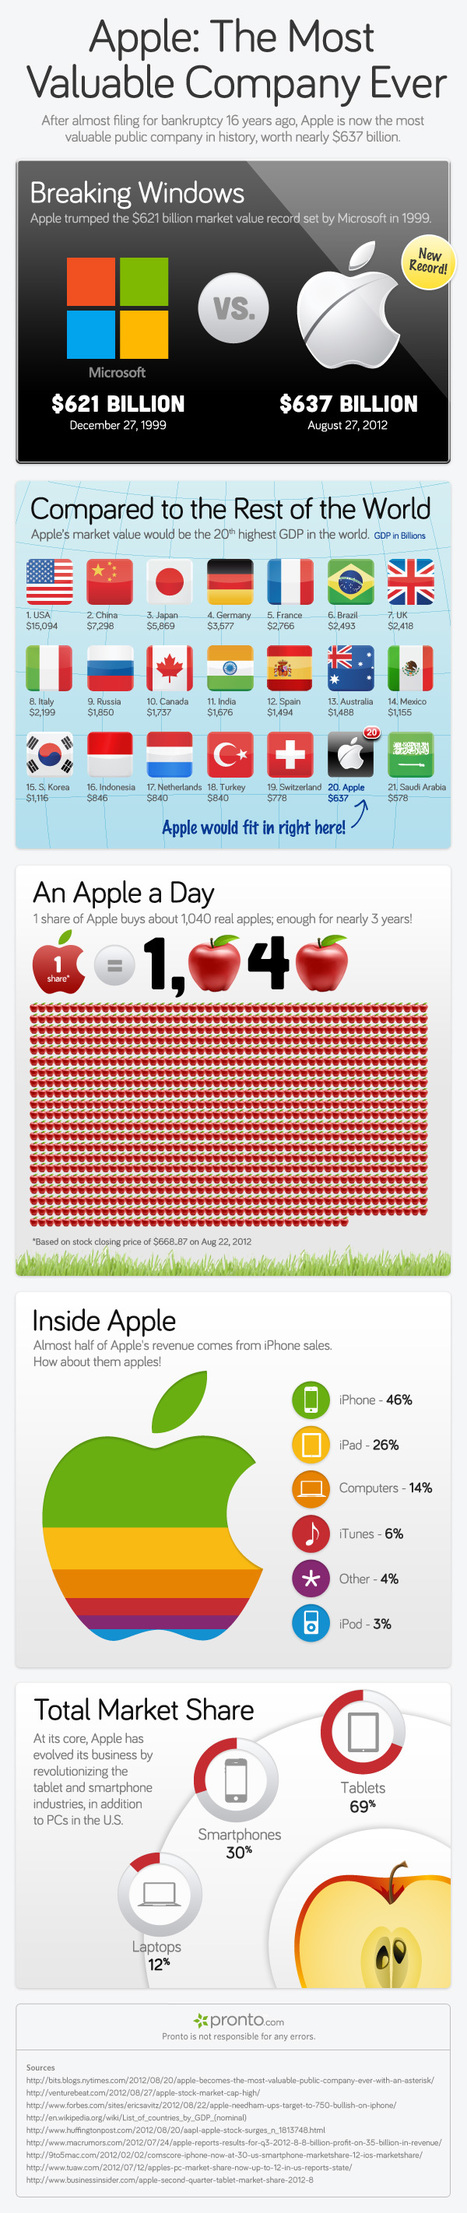 Apple: The Most Valuable Company Ever (Infographic) | Adverts, Digital, Social, Marketing | Scoop.it